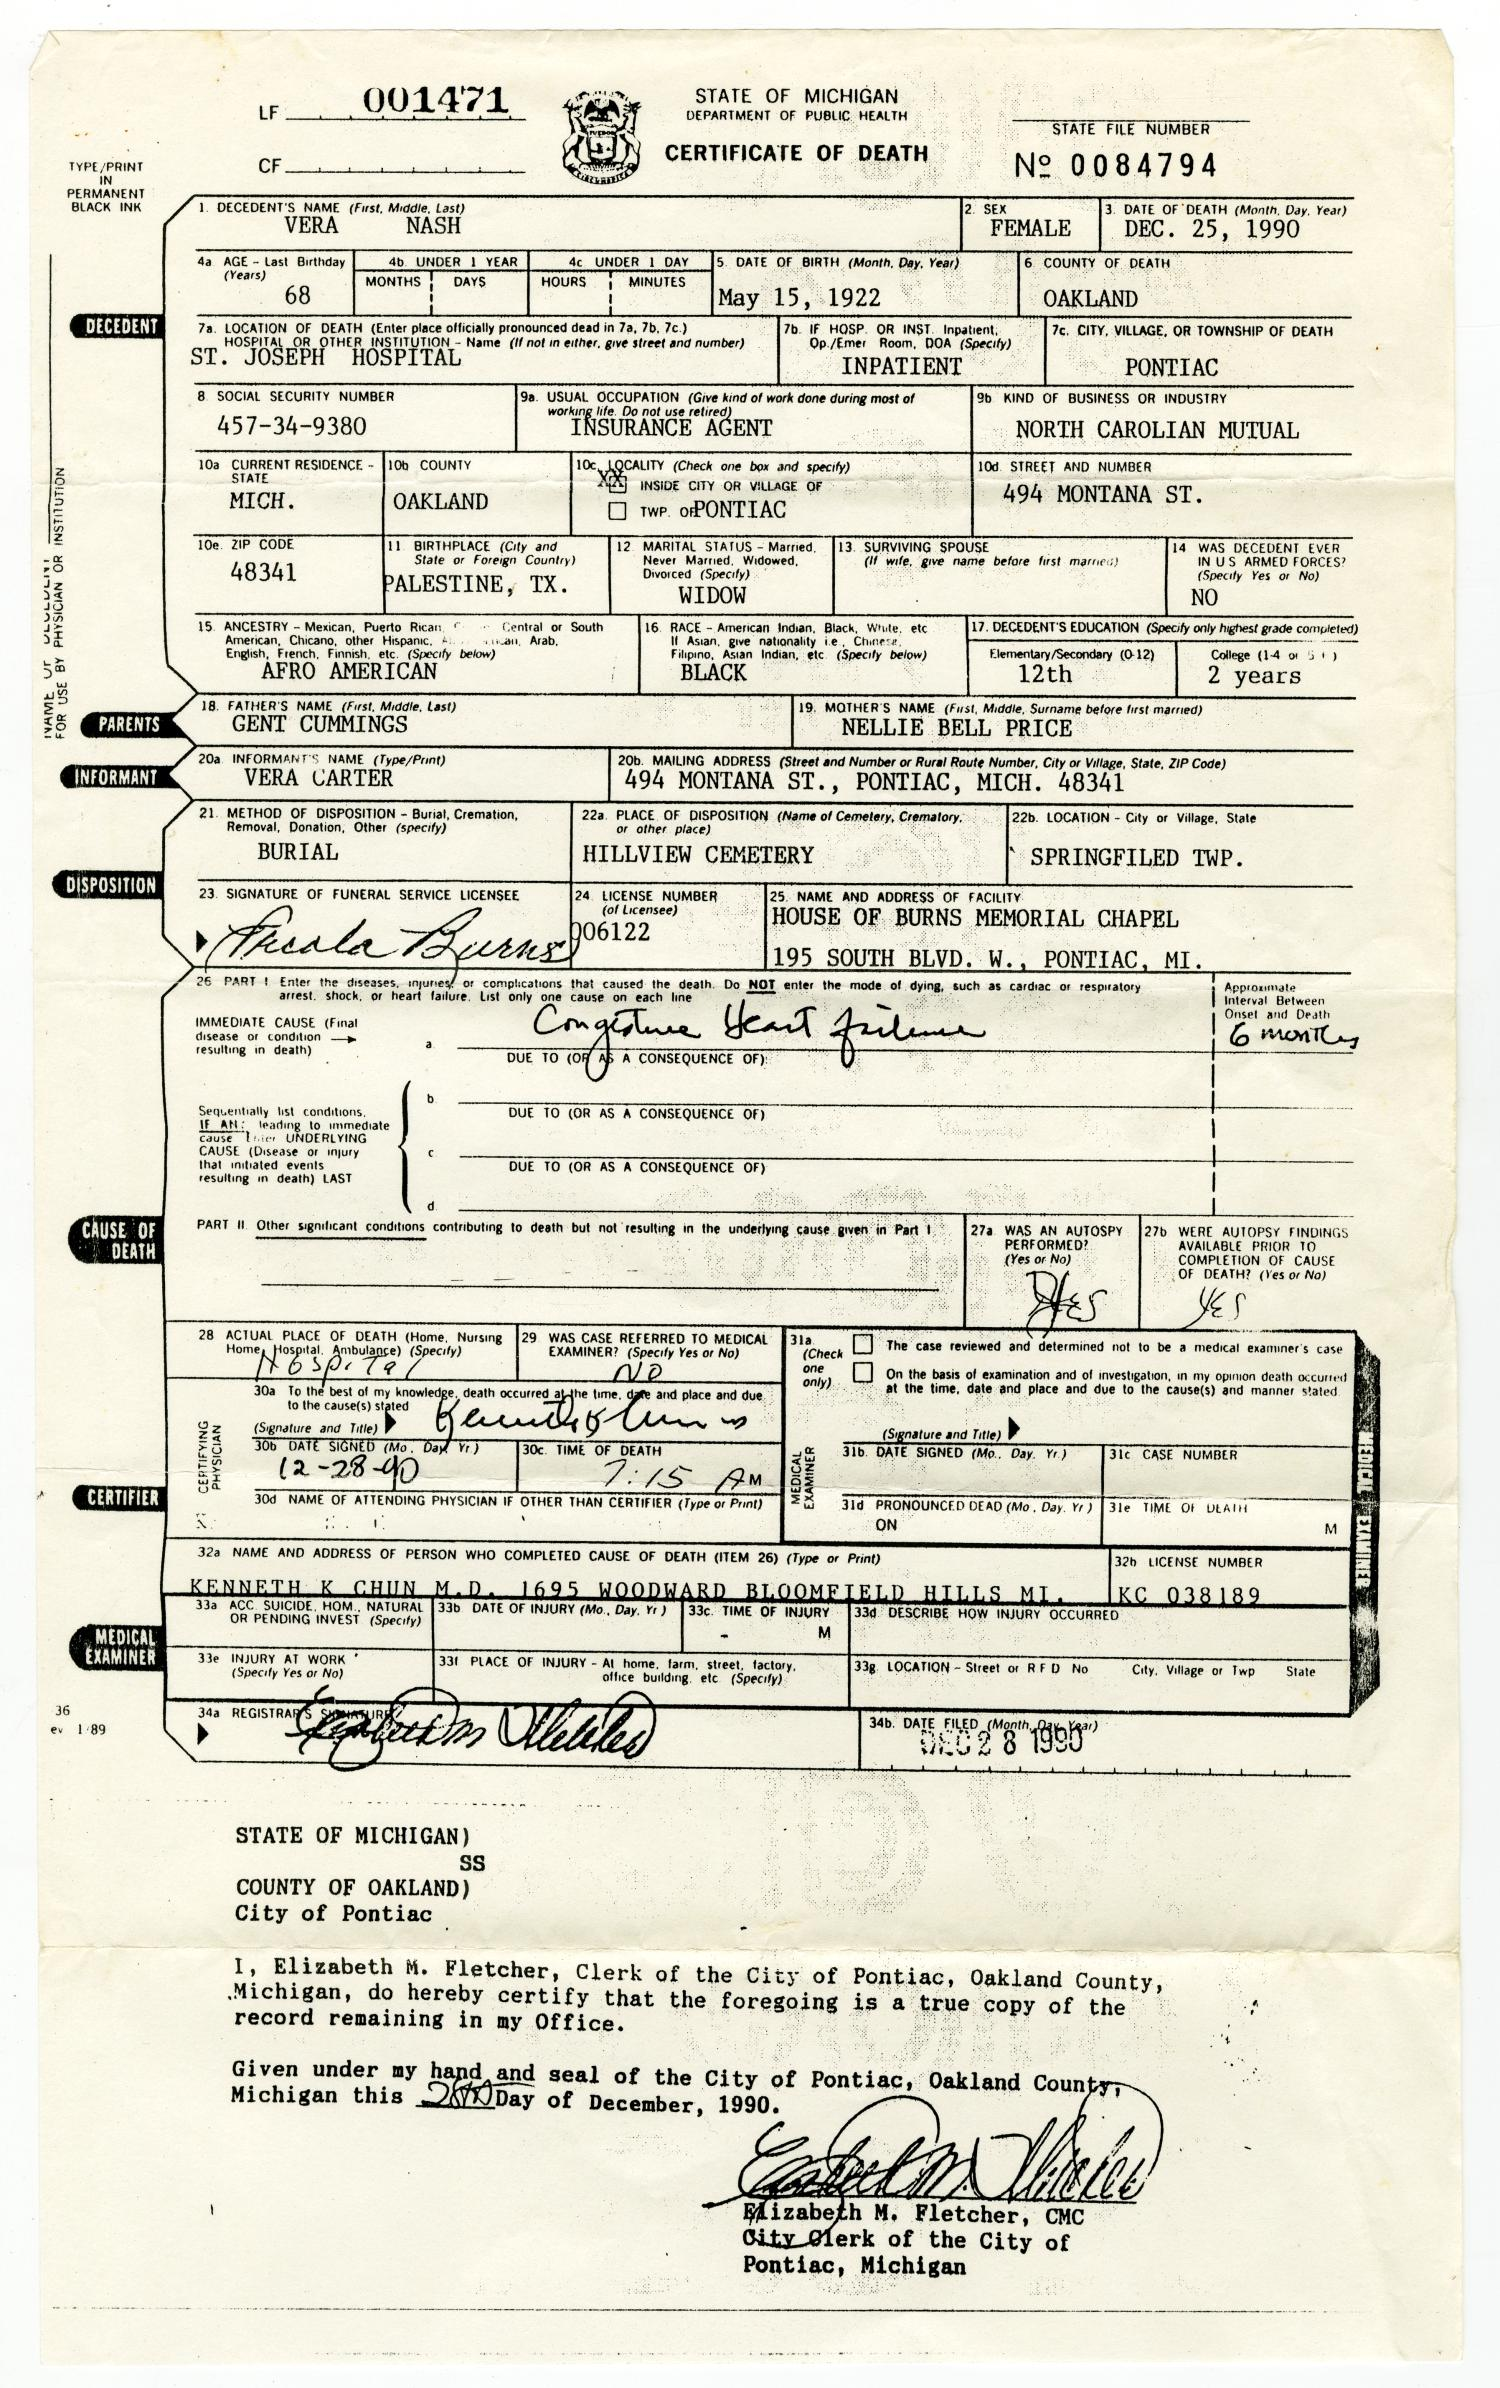 Death certificate for vera nash the portal to texas history death certificate for vera nash the portal to texas history xflitez Gallery